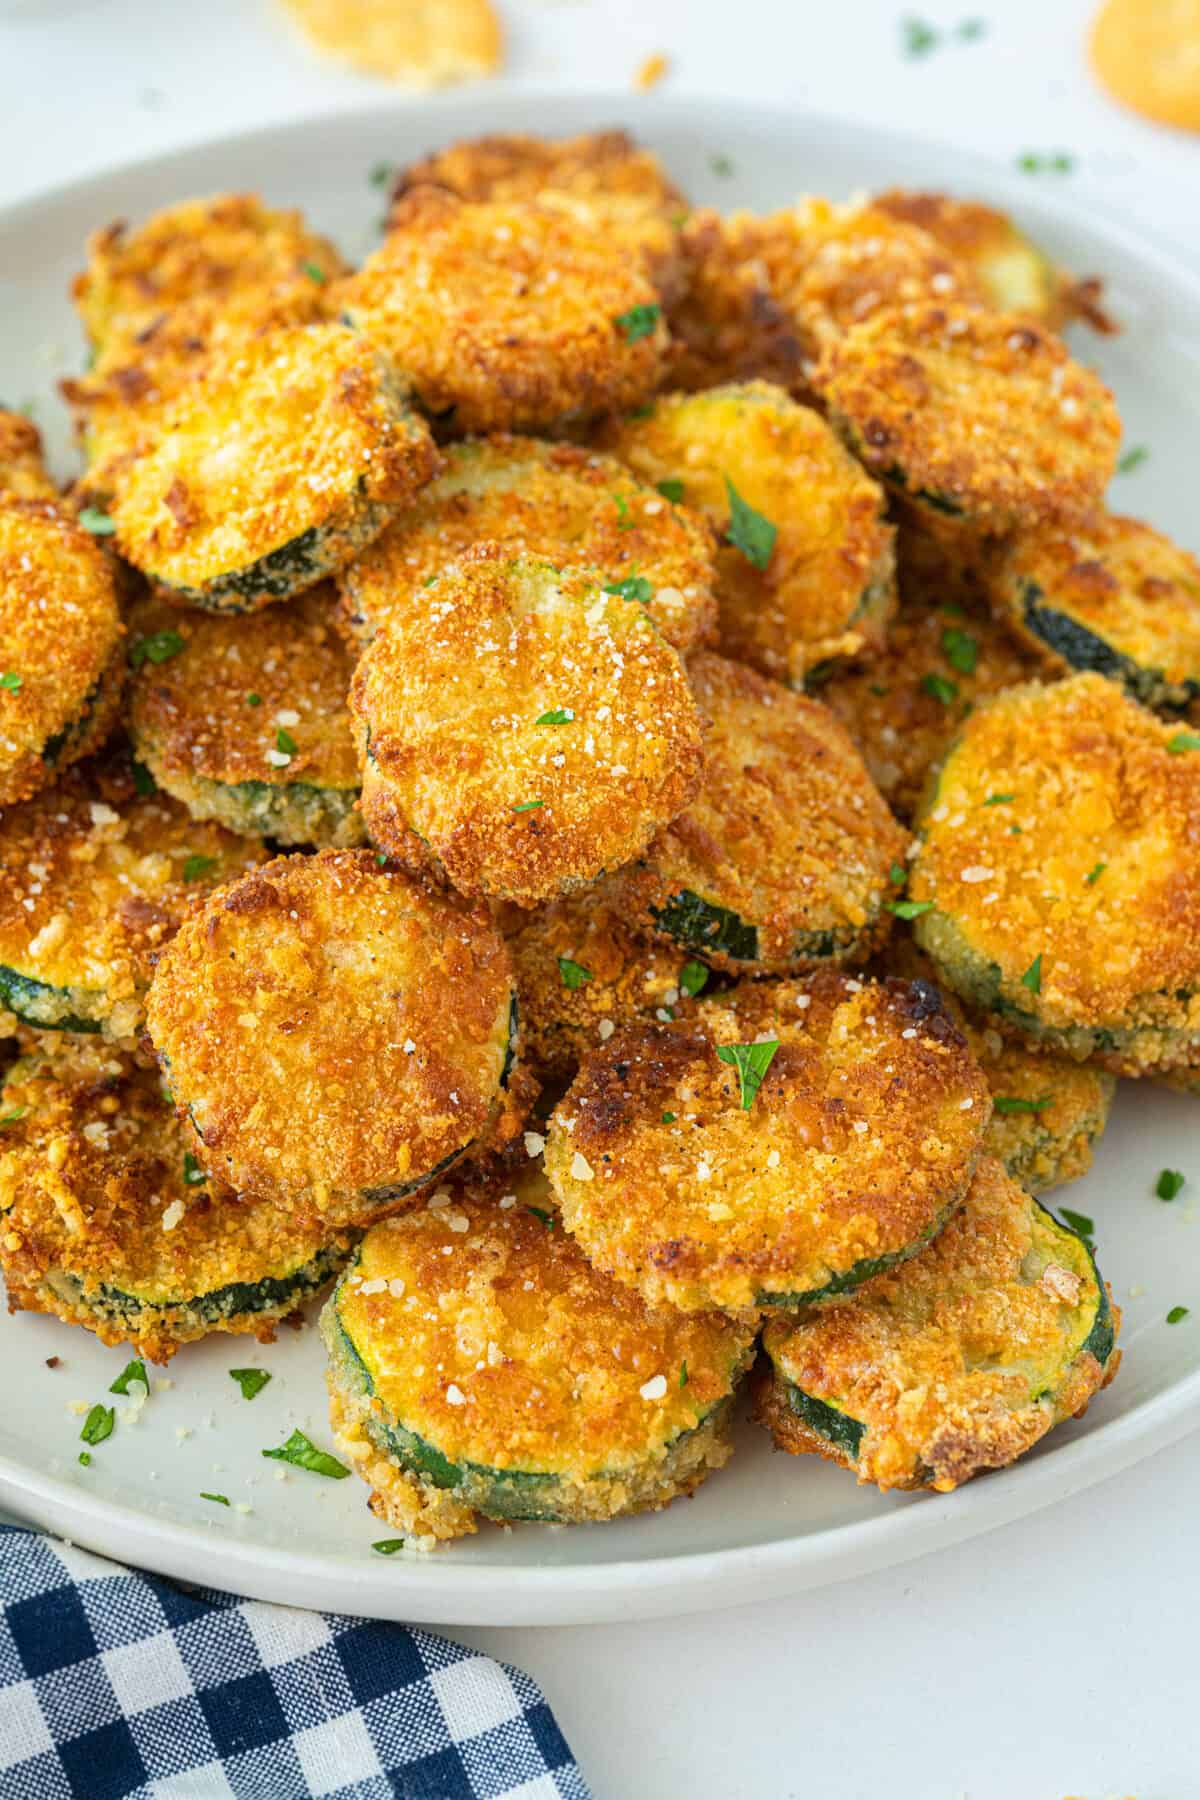 fried zucchini on a plate